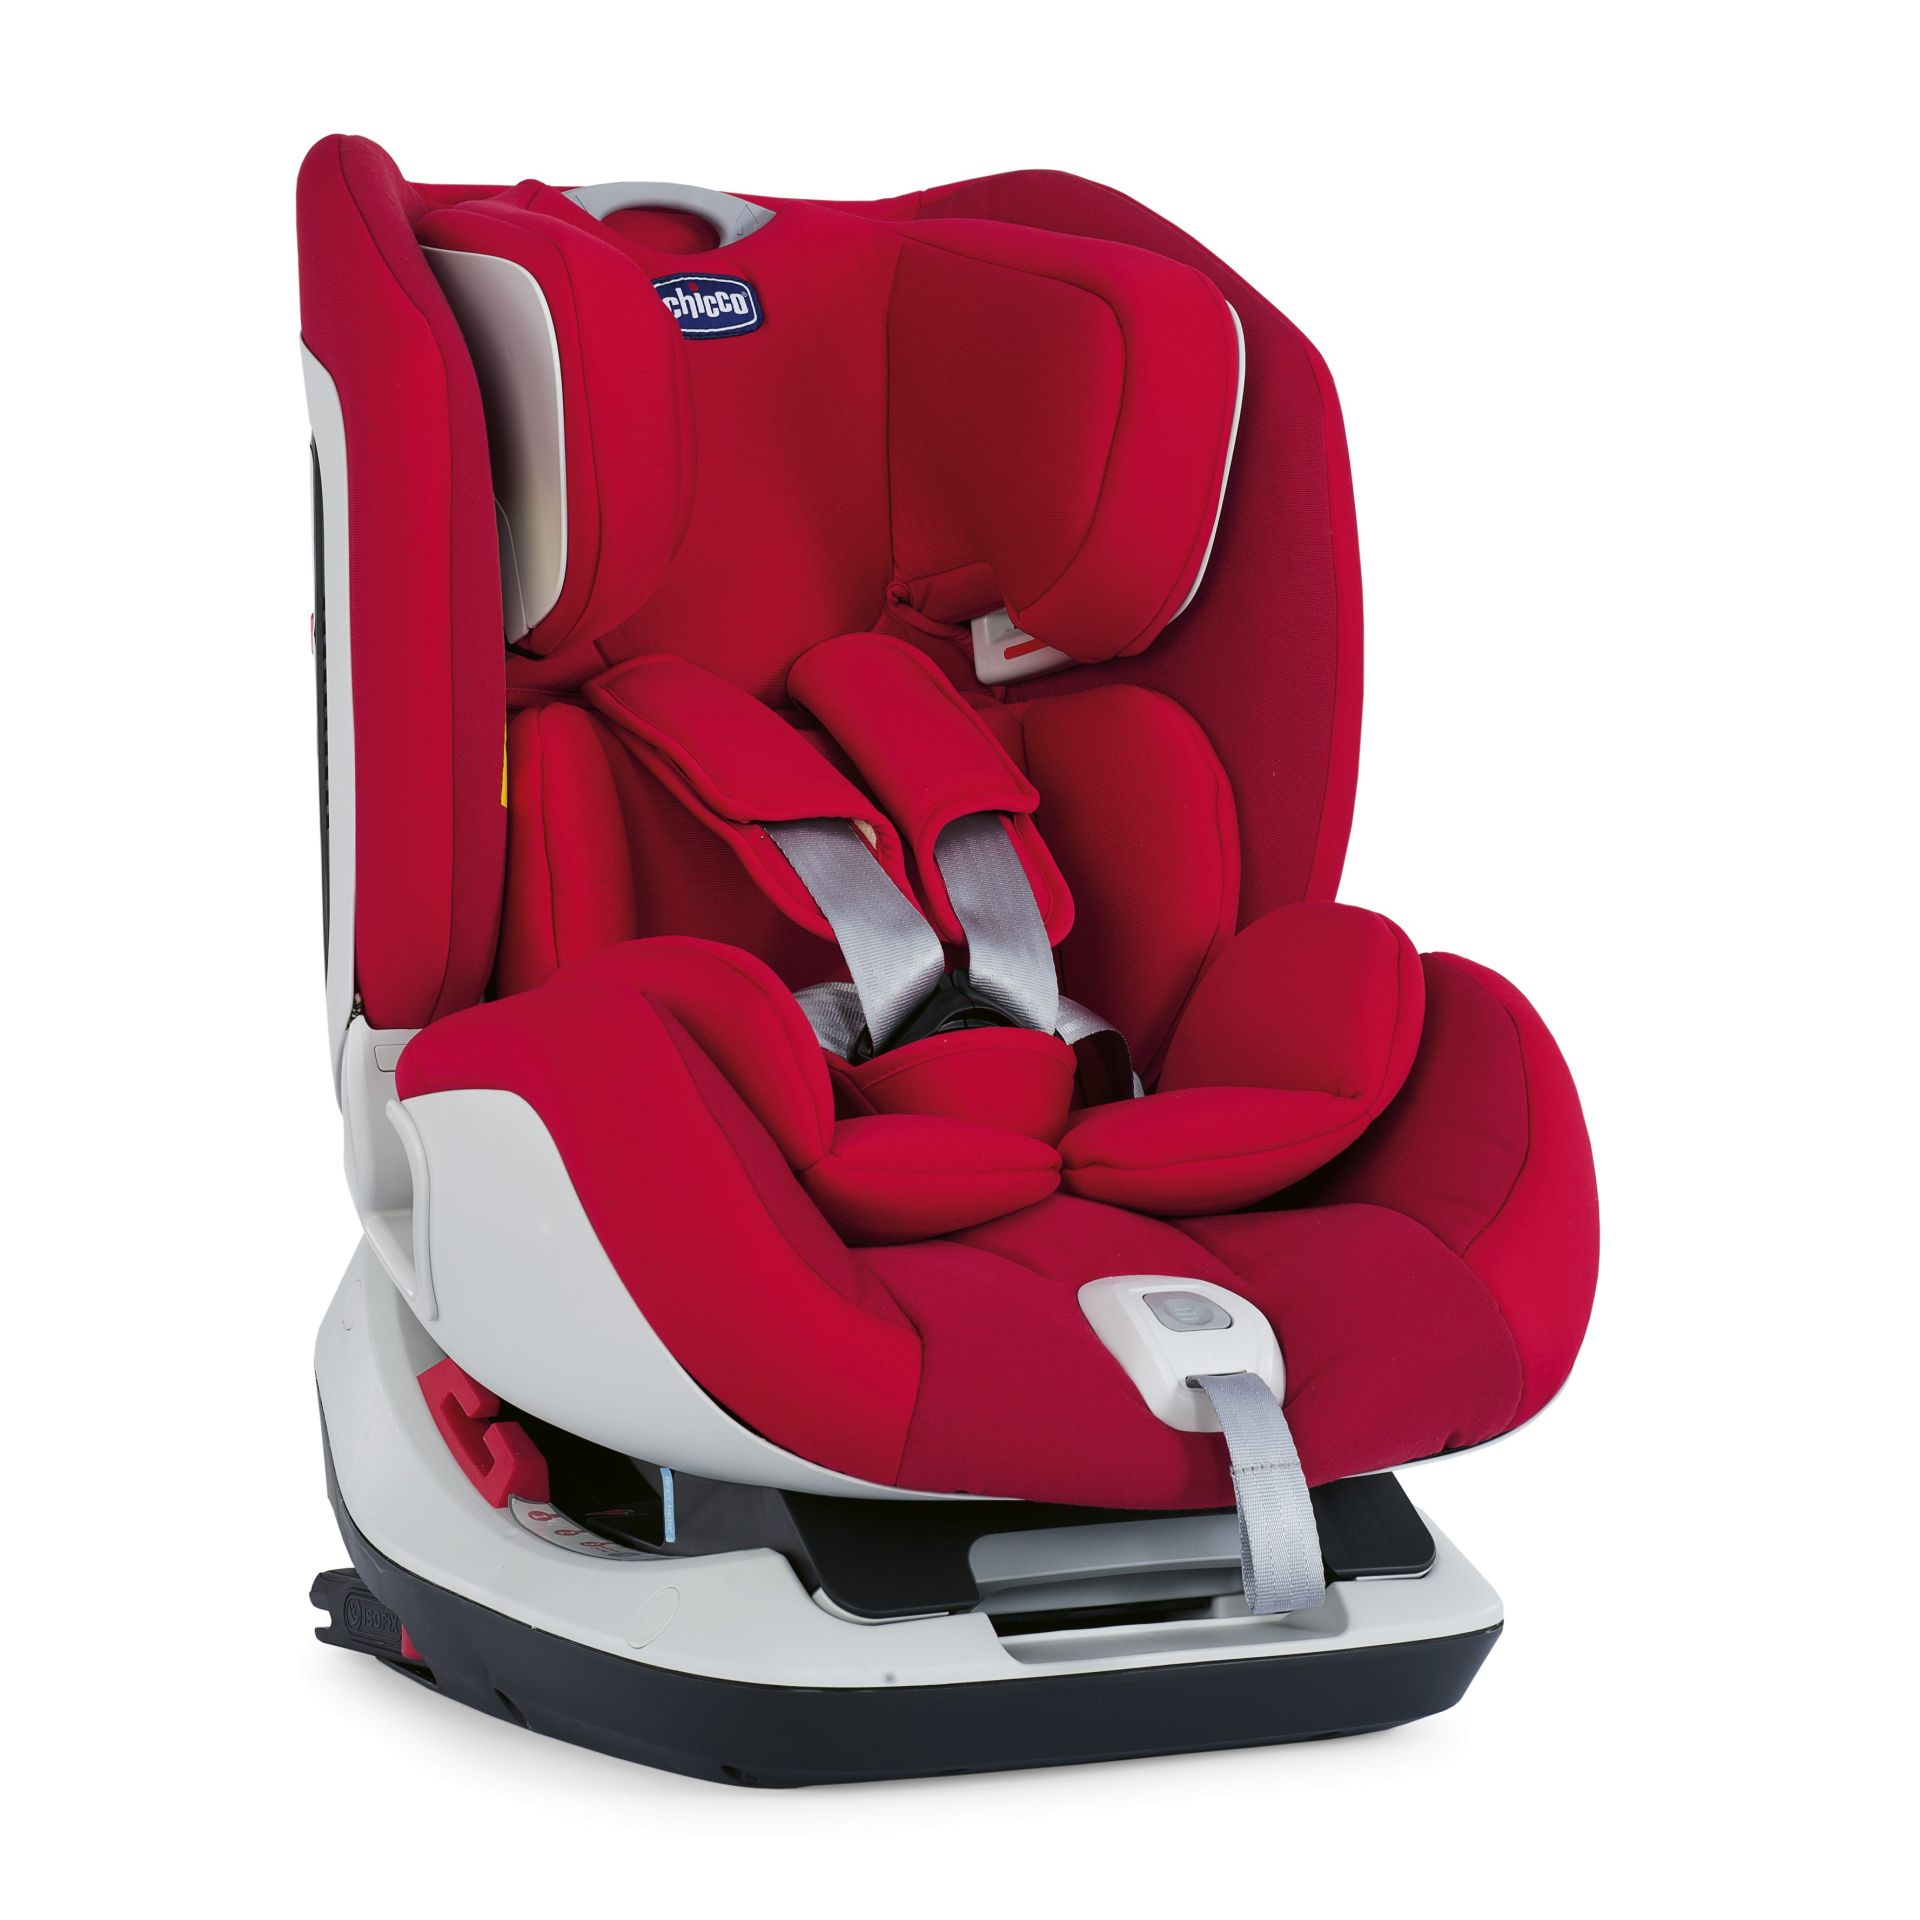 chicco car seat seat up 0 1 2 2018 red buy at kidsroom car seats. Black Bedroom Furniture Sets. Home Design Ideas